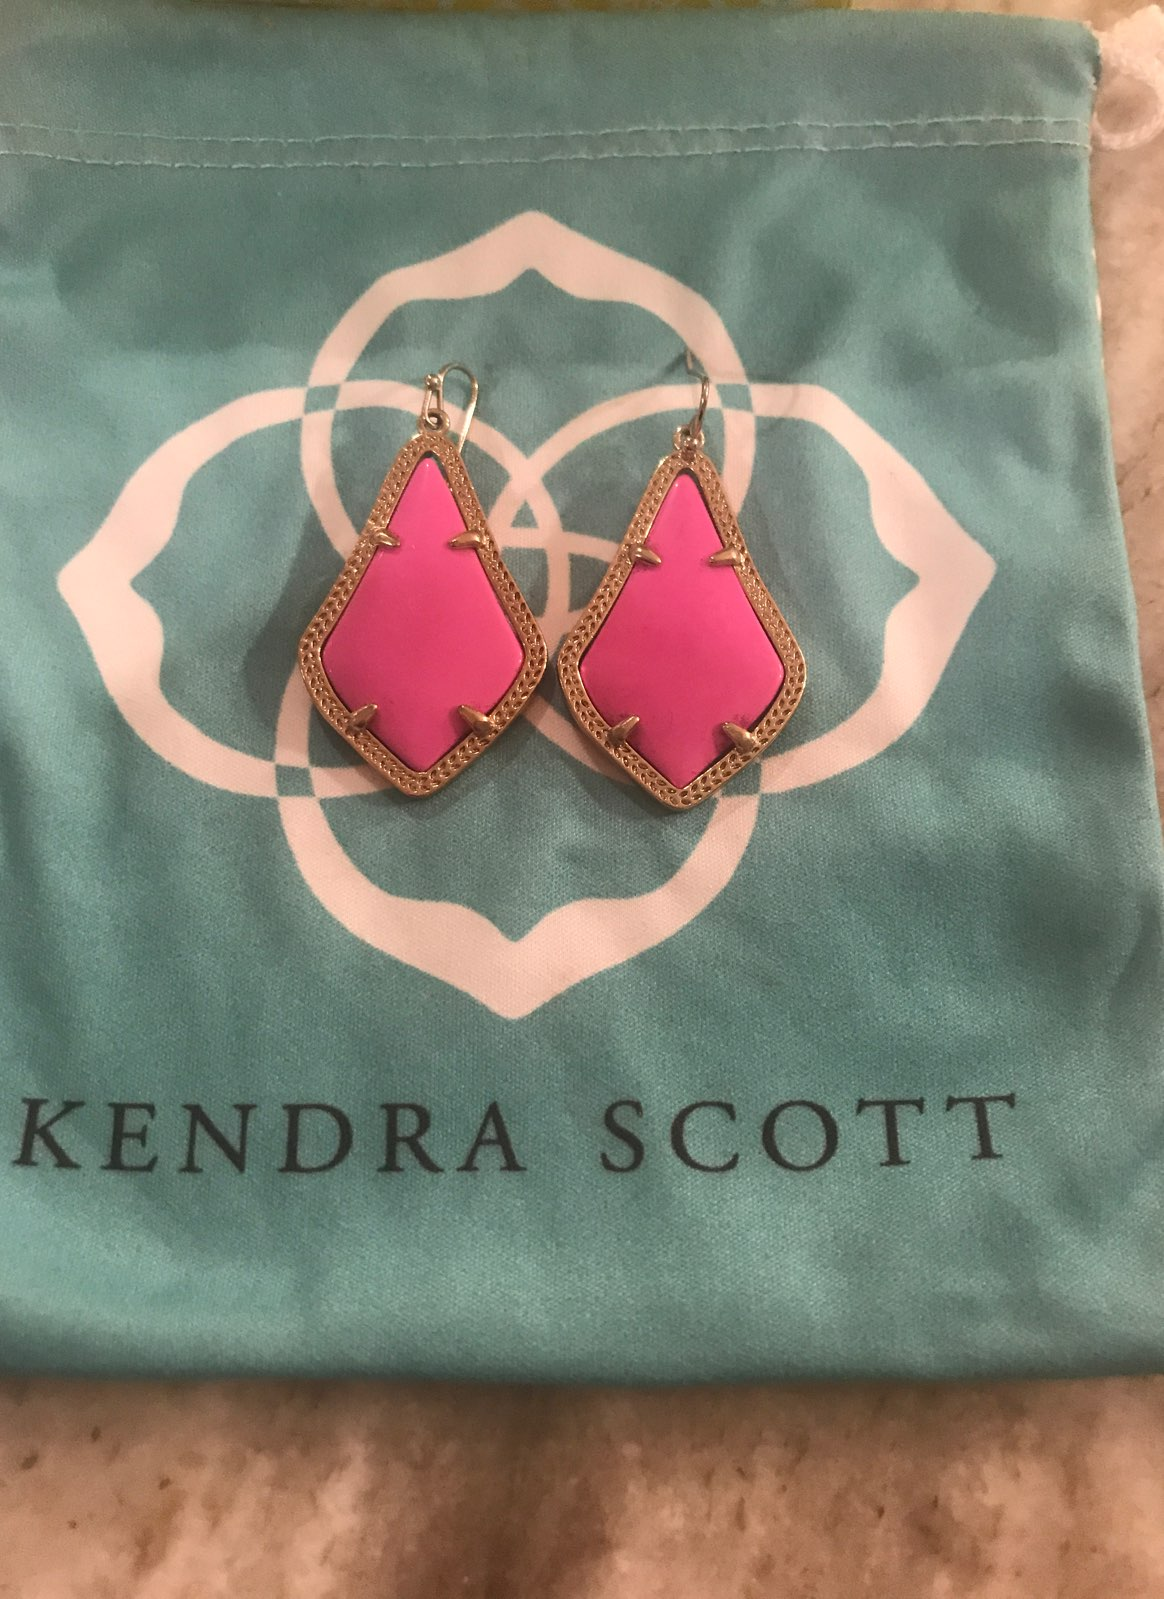 Kendra scott chandelier earrings mercari the selling app kendra scott chandelier earrings arubaitofo Images